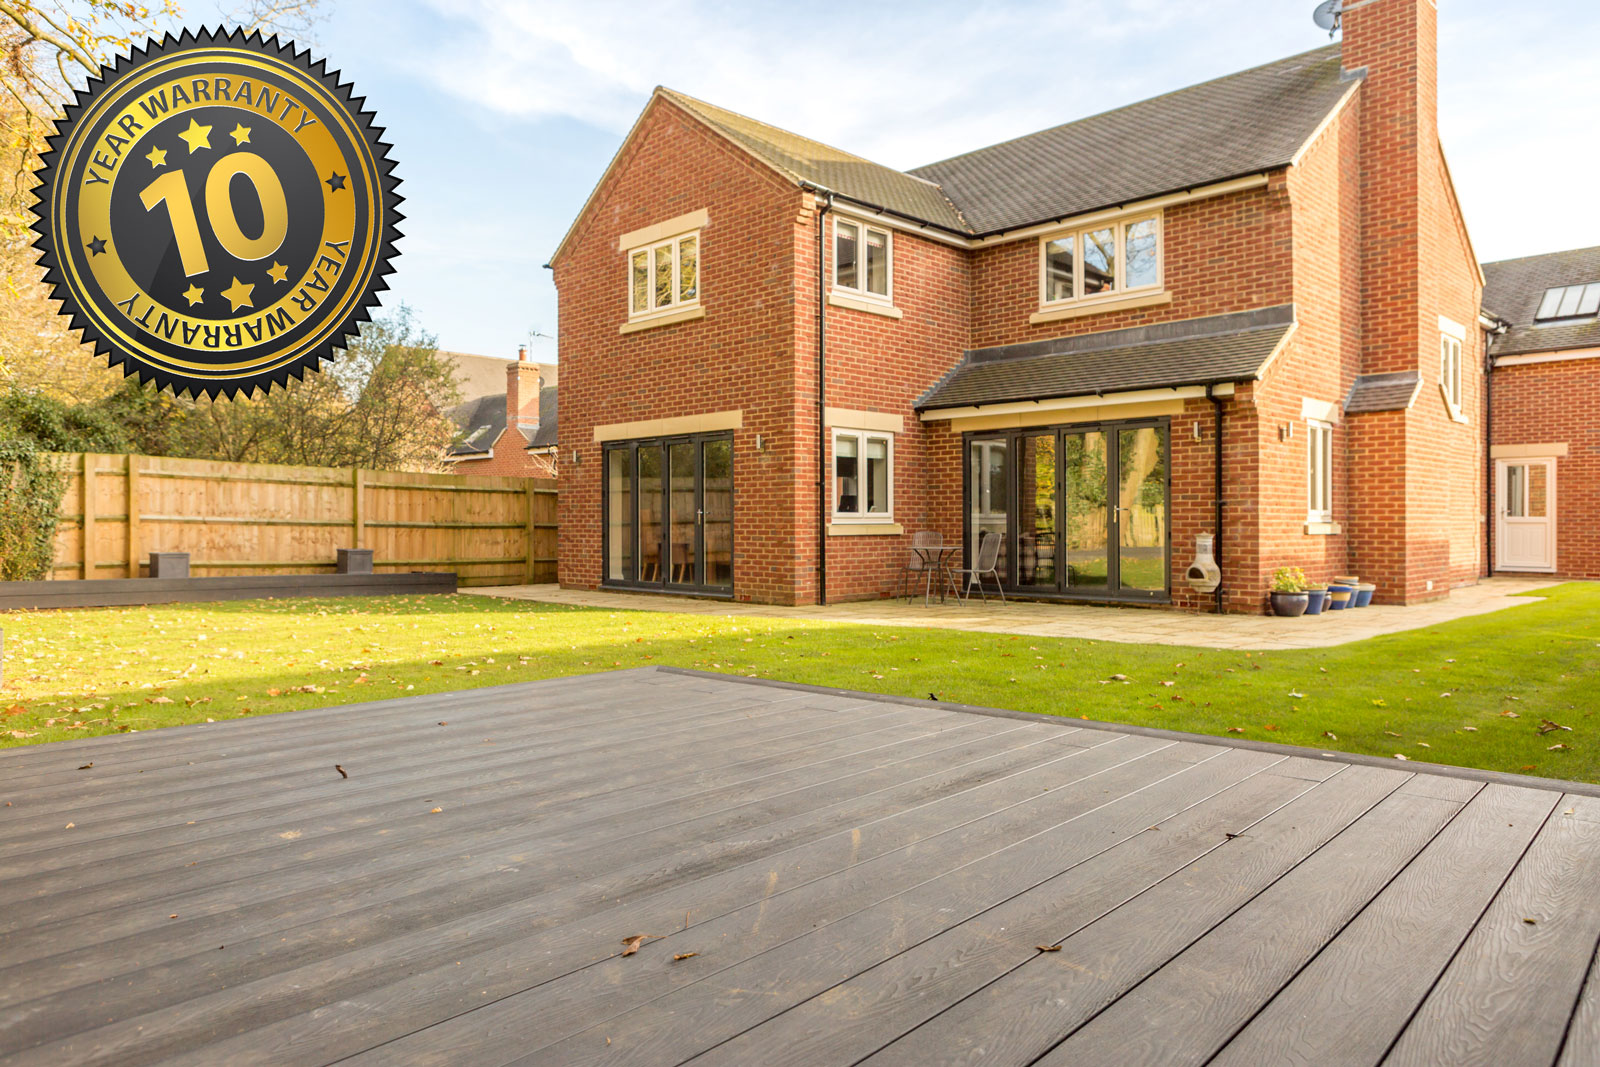 New Composite Decking, Bloxham, New Driveway Company